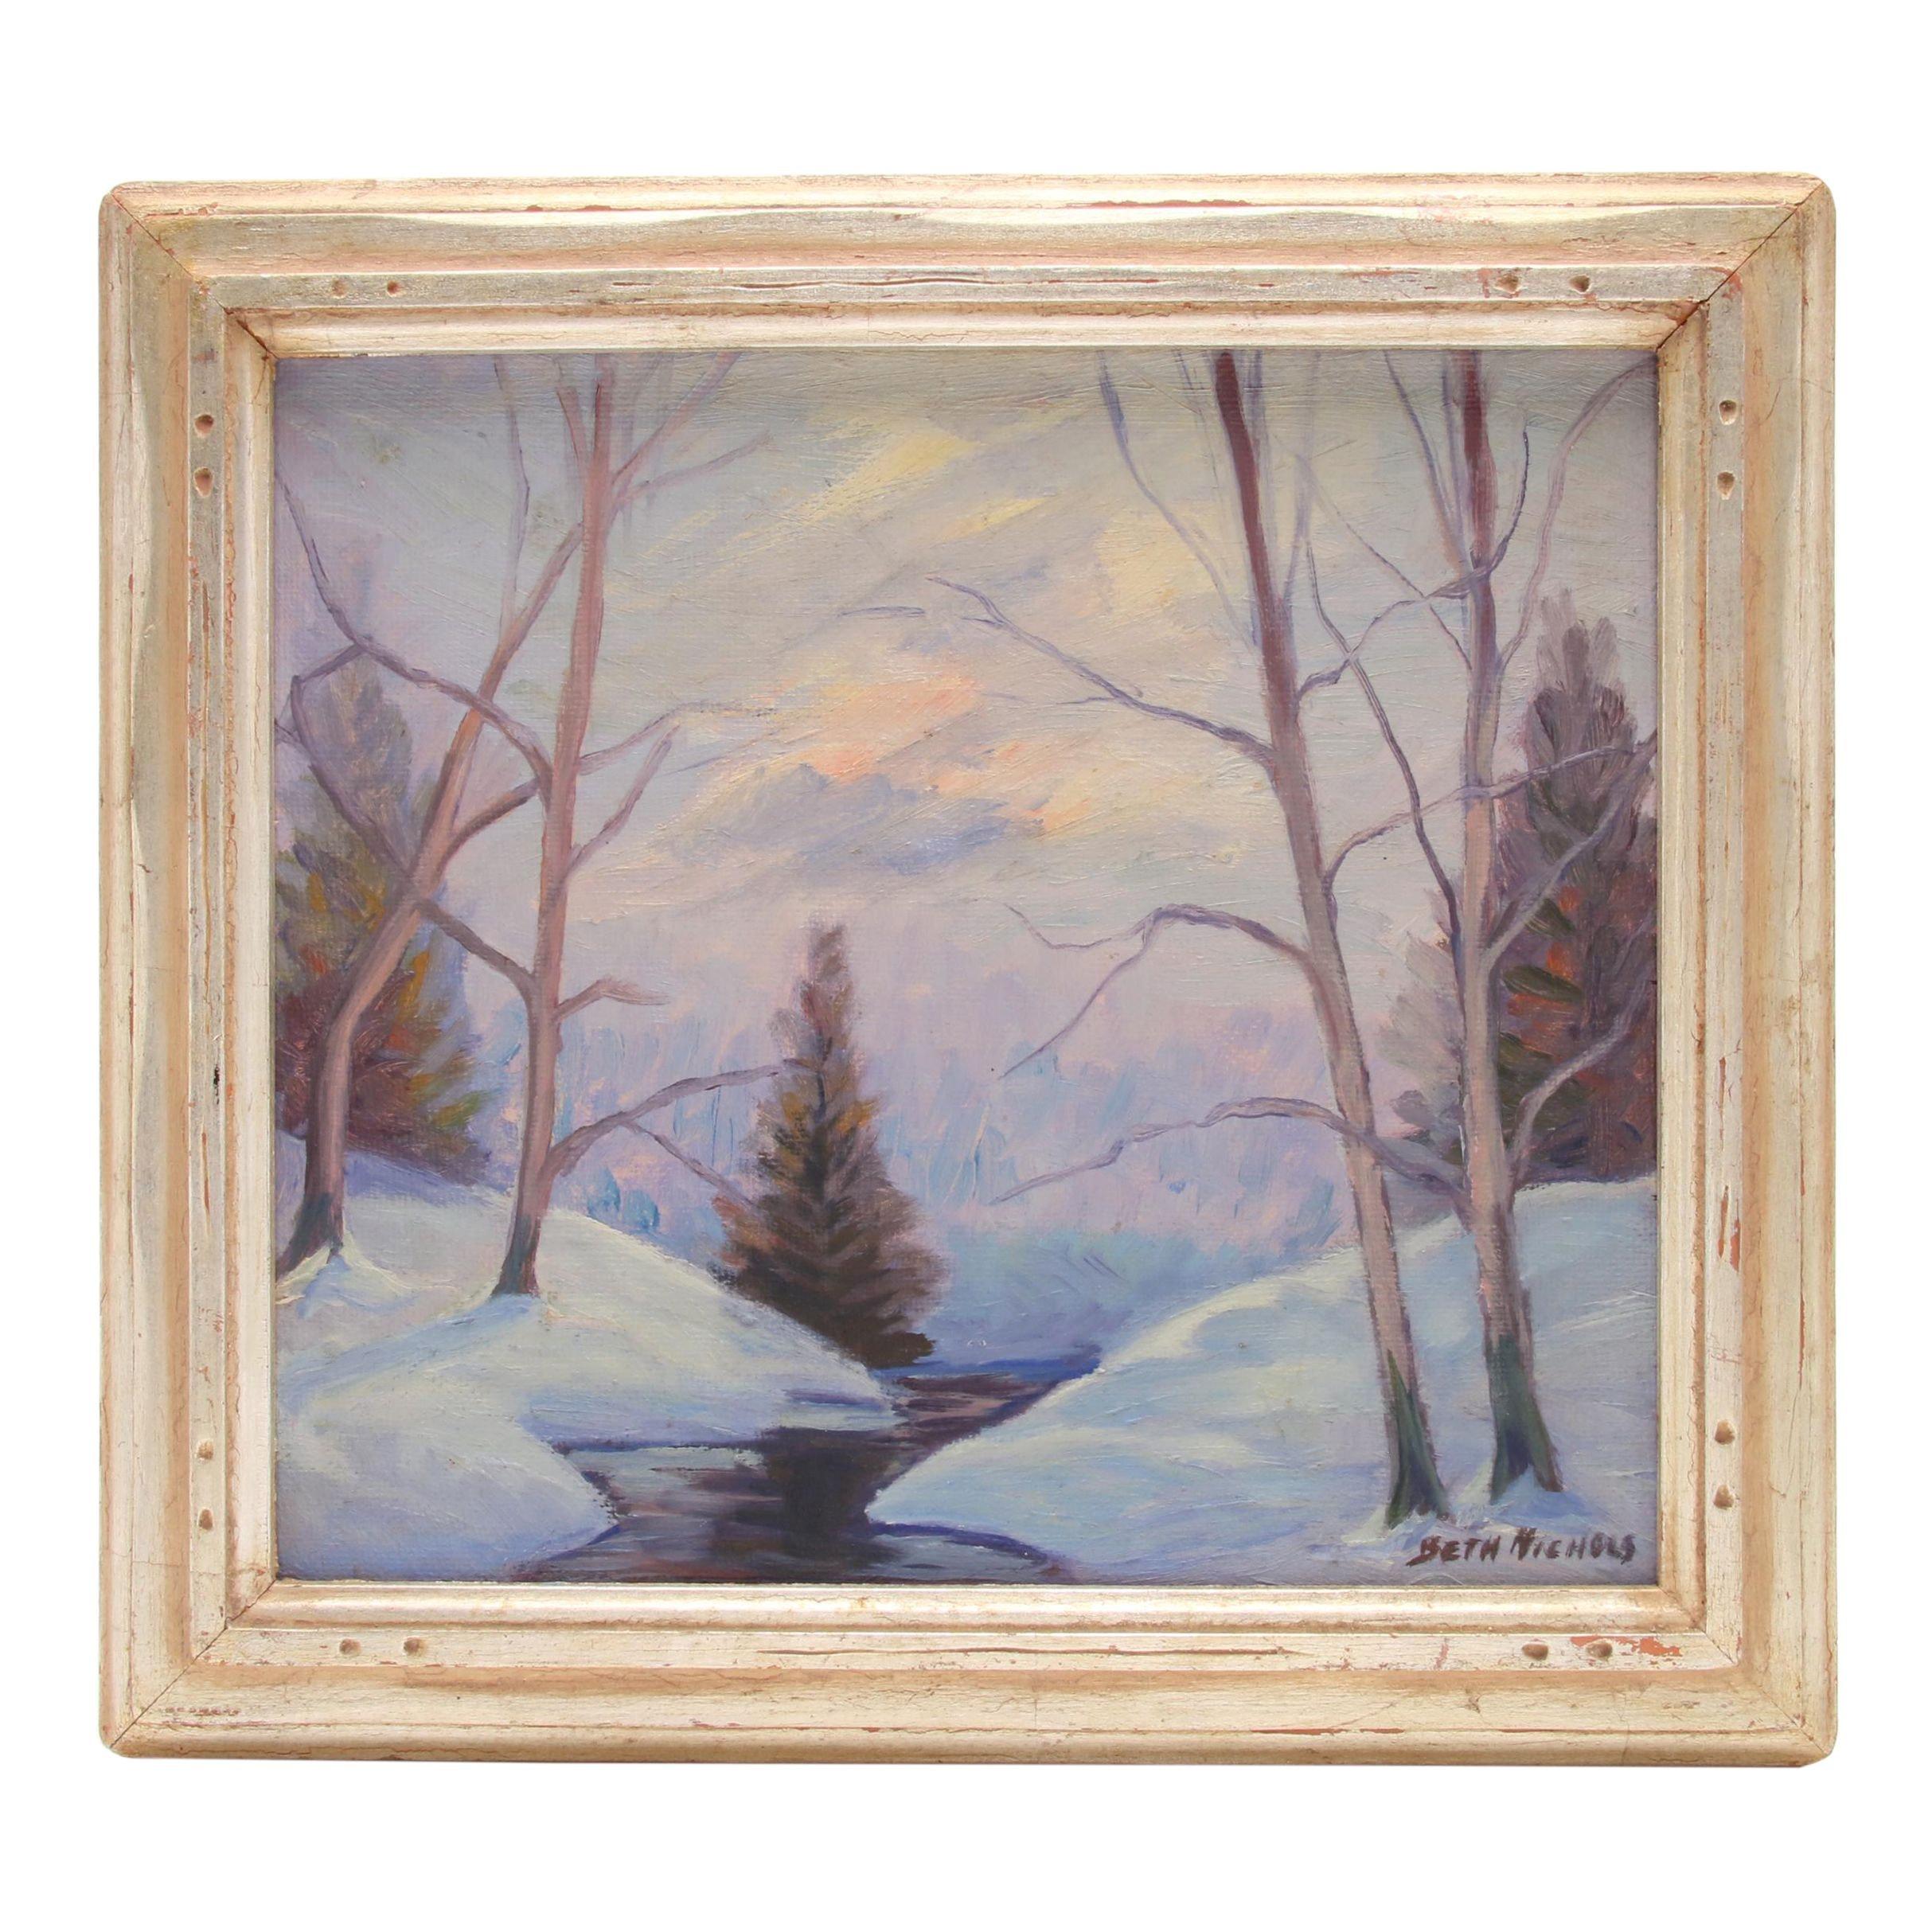 Beth Nichols Oil Painting of Winter Landscape